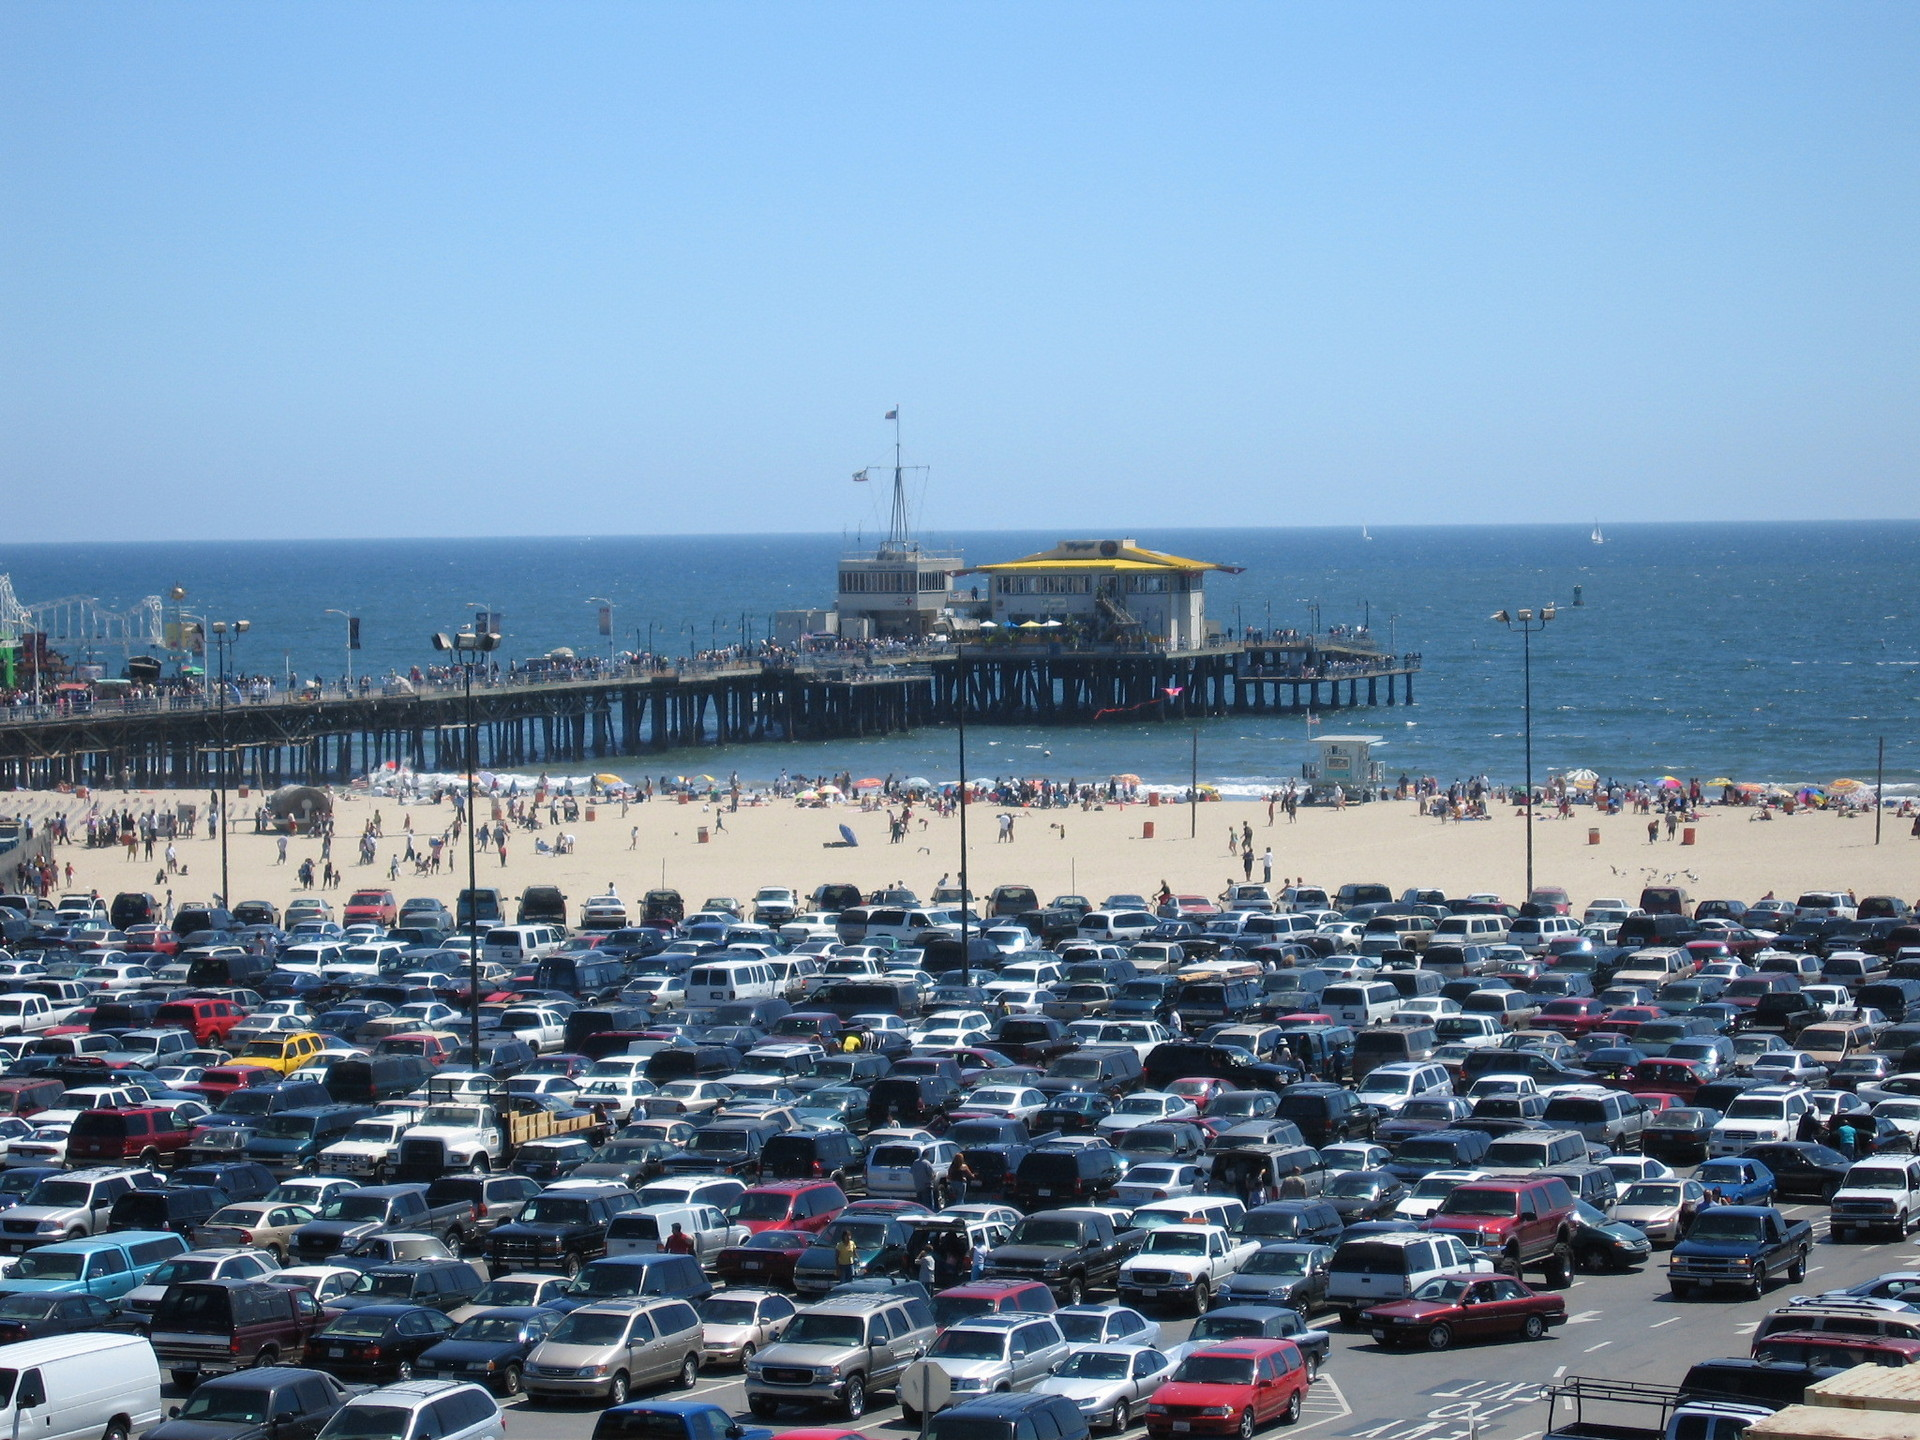 Los Angeles Images Santa Monica Beach Hd Wallpaper And Background Photos